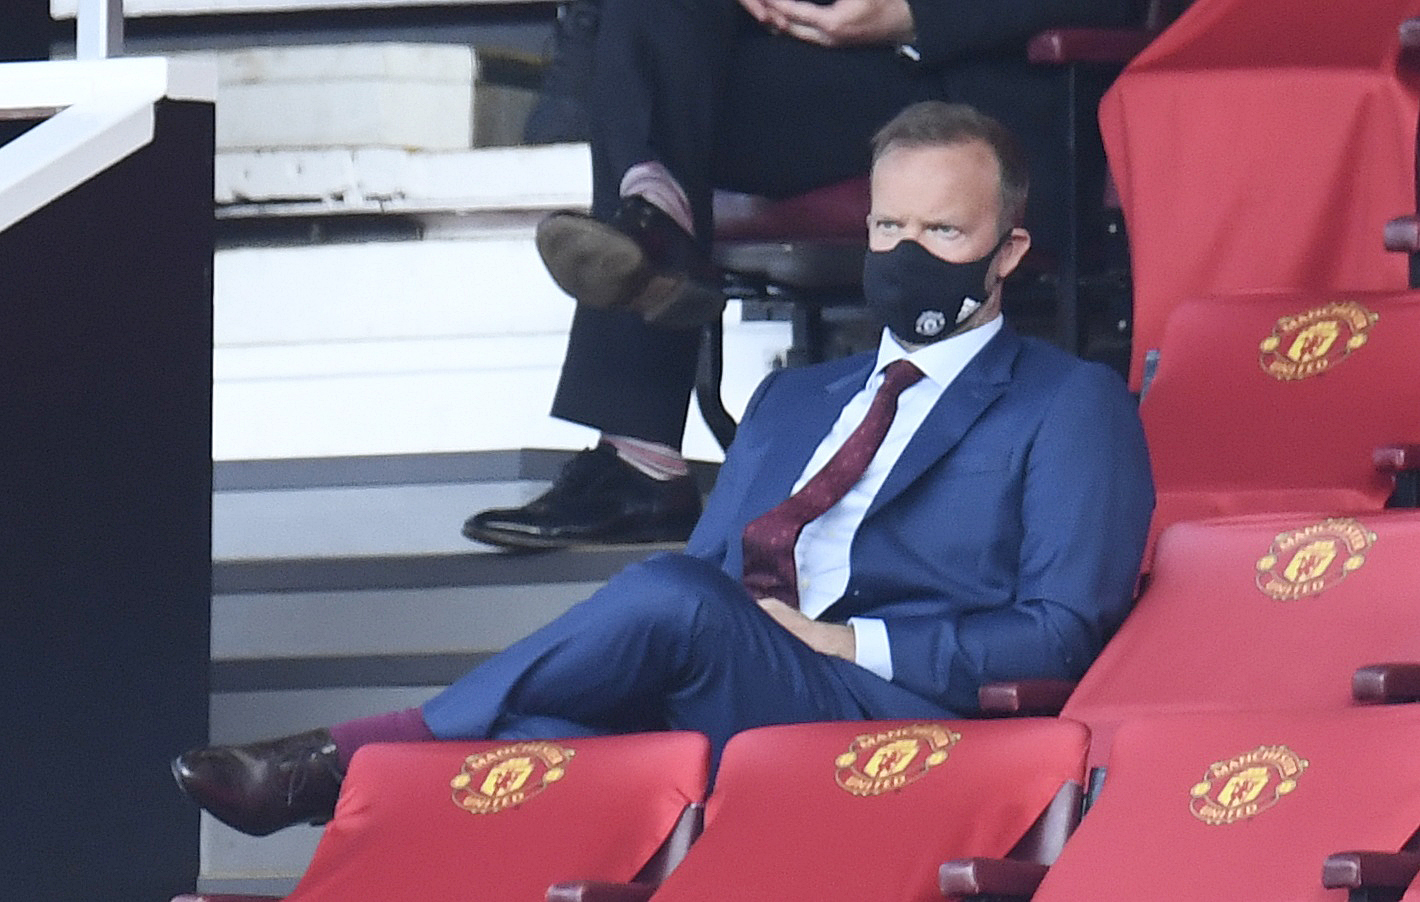 Soccer Football - Premier League - Manchester United v Southampton - Old Trafford, Manchester, Britain - July 13, 2020 Manchester United executive vice-chairman Ed Woodward in the stands, as play resumes behind closed doors following the outbreak of the coronavirus disease (COVID-19) Pool via REUTERS/Peter Powell